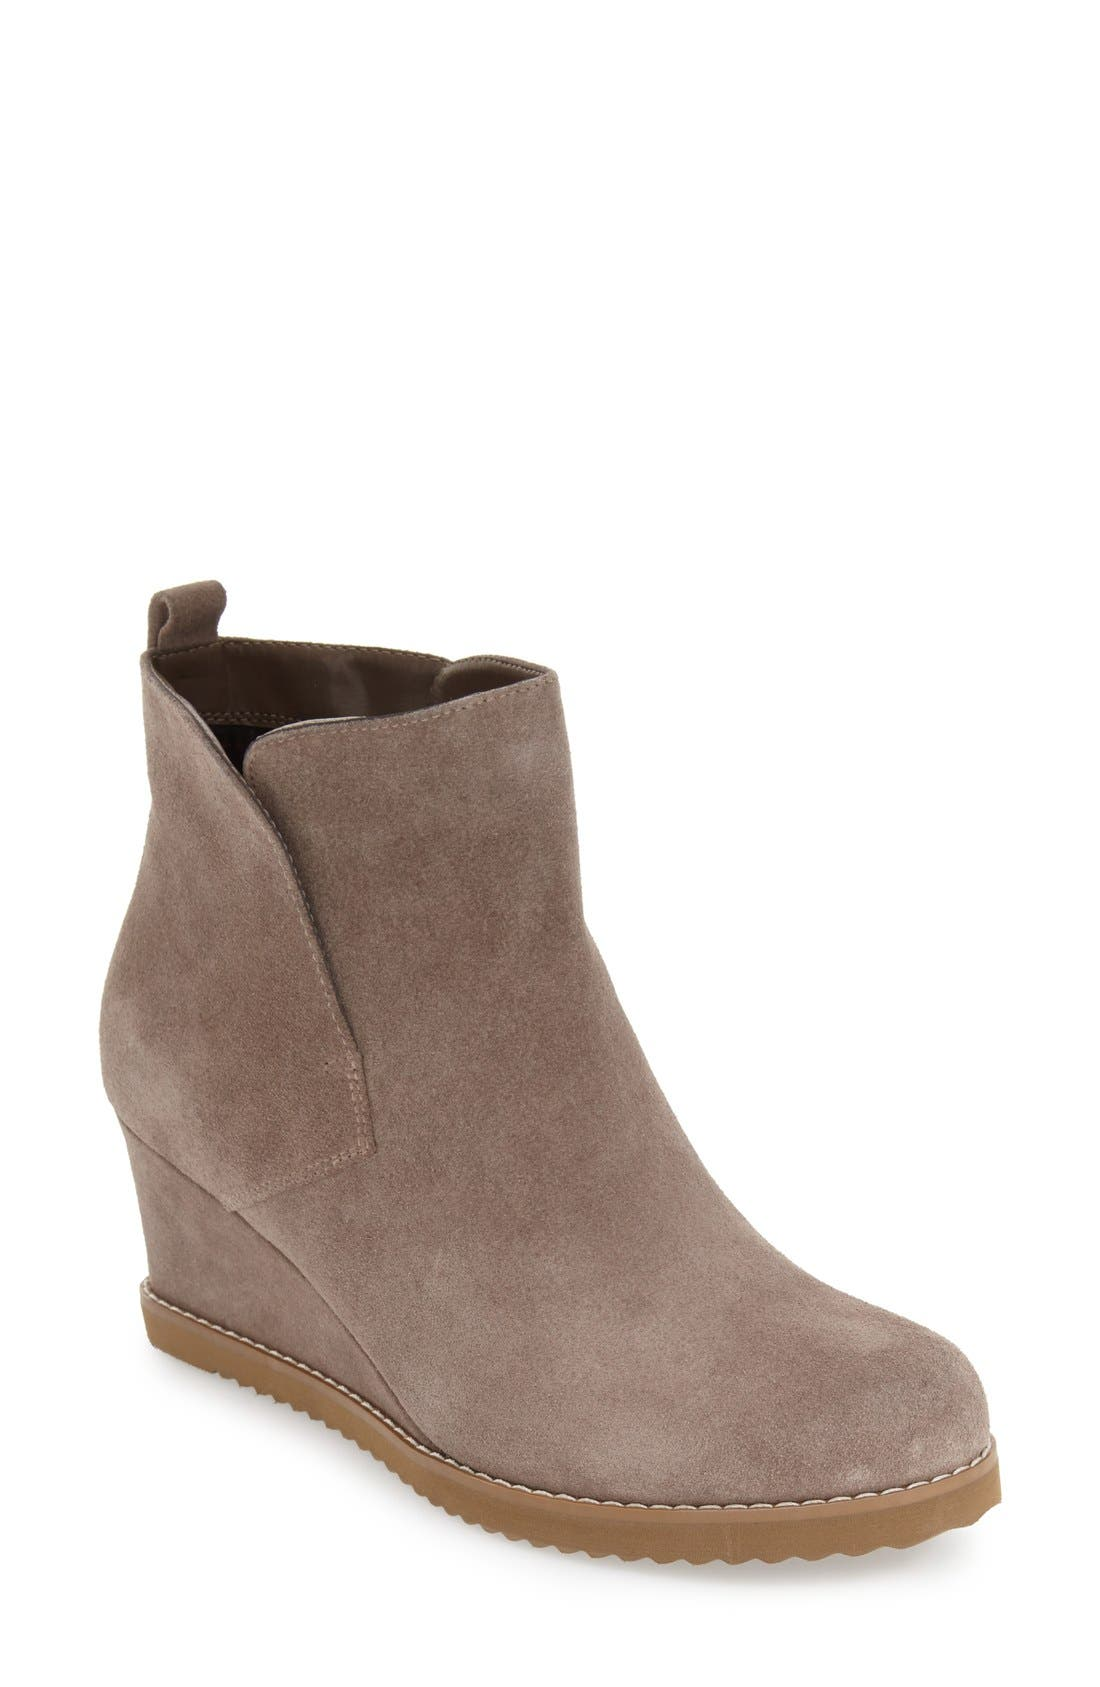 Blondo 'Karla' Waterproof Wedge Bootie (Women)